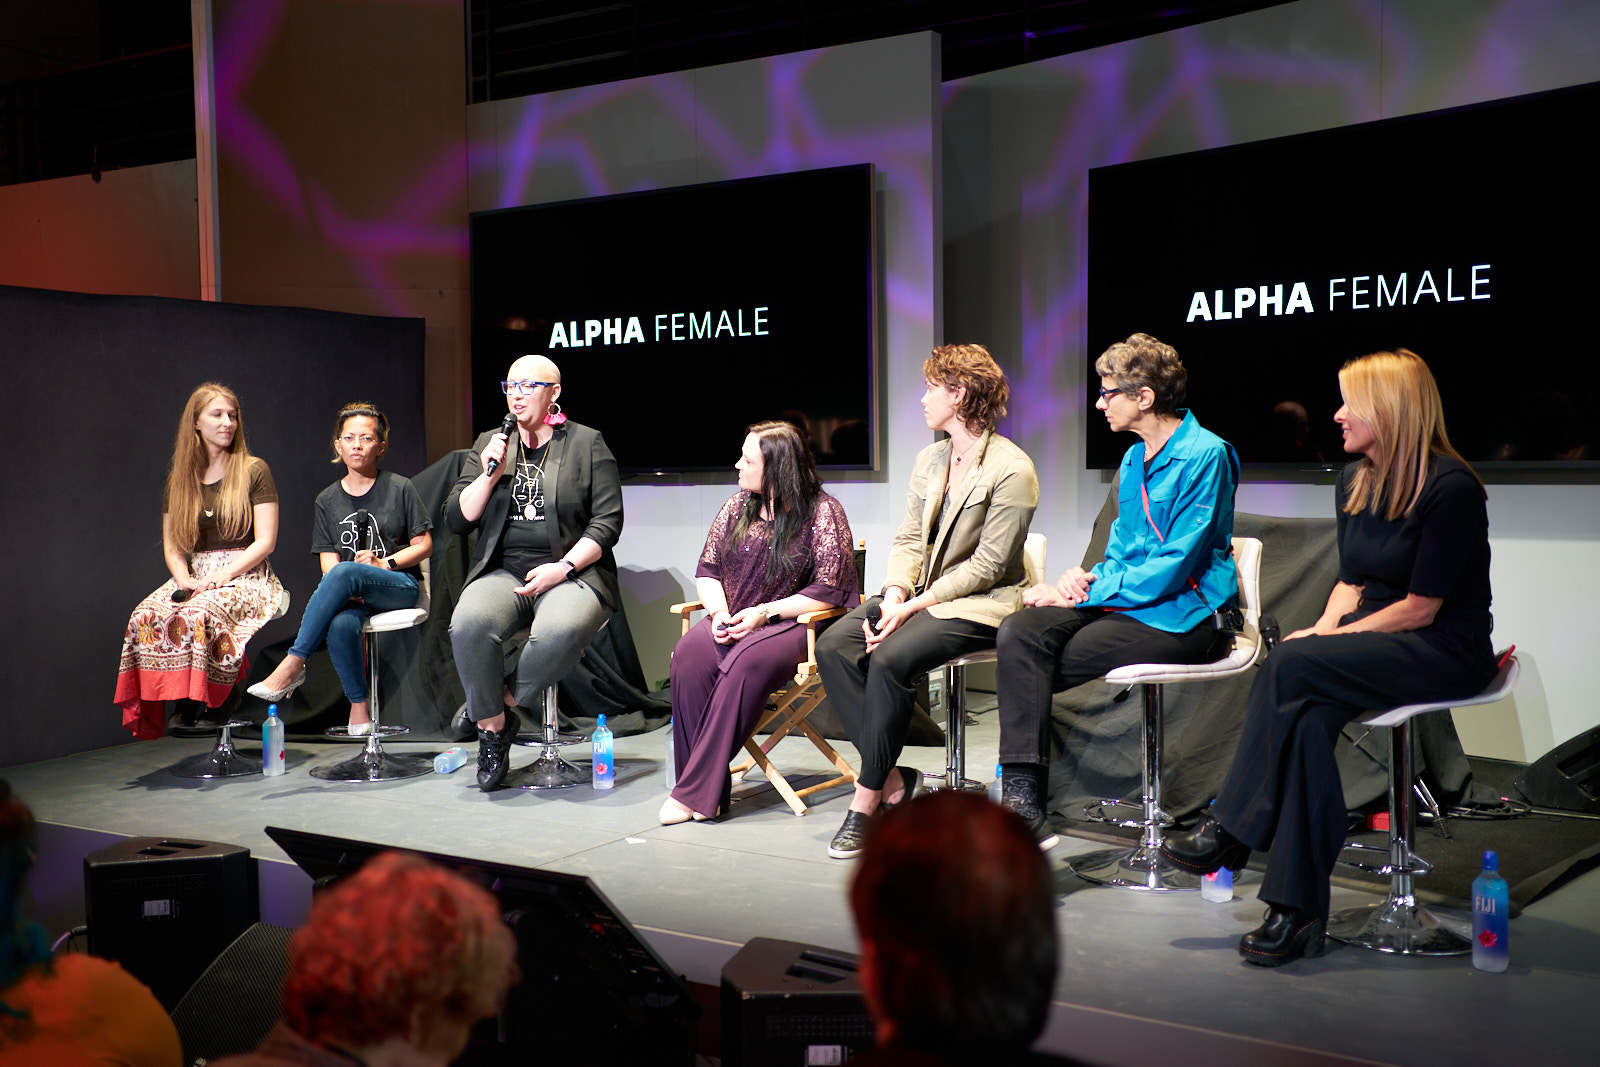 The Alpha Female 2.0 Creators-in-Residence